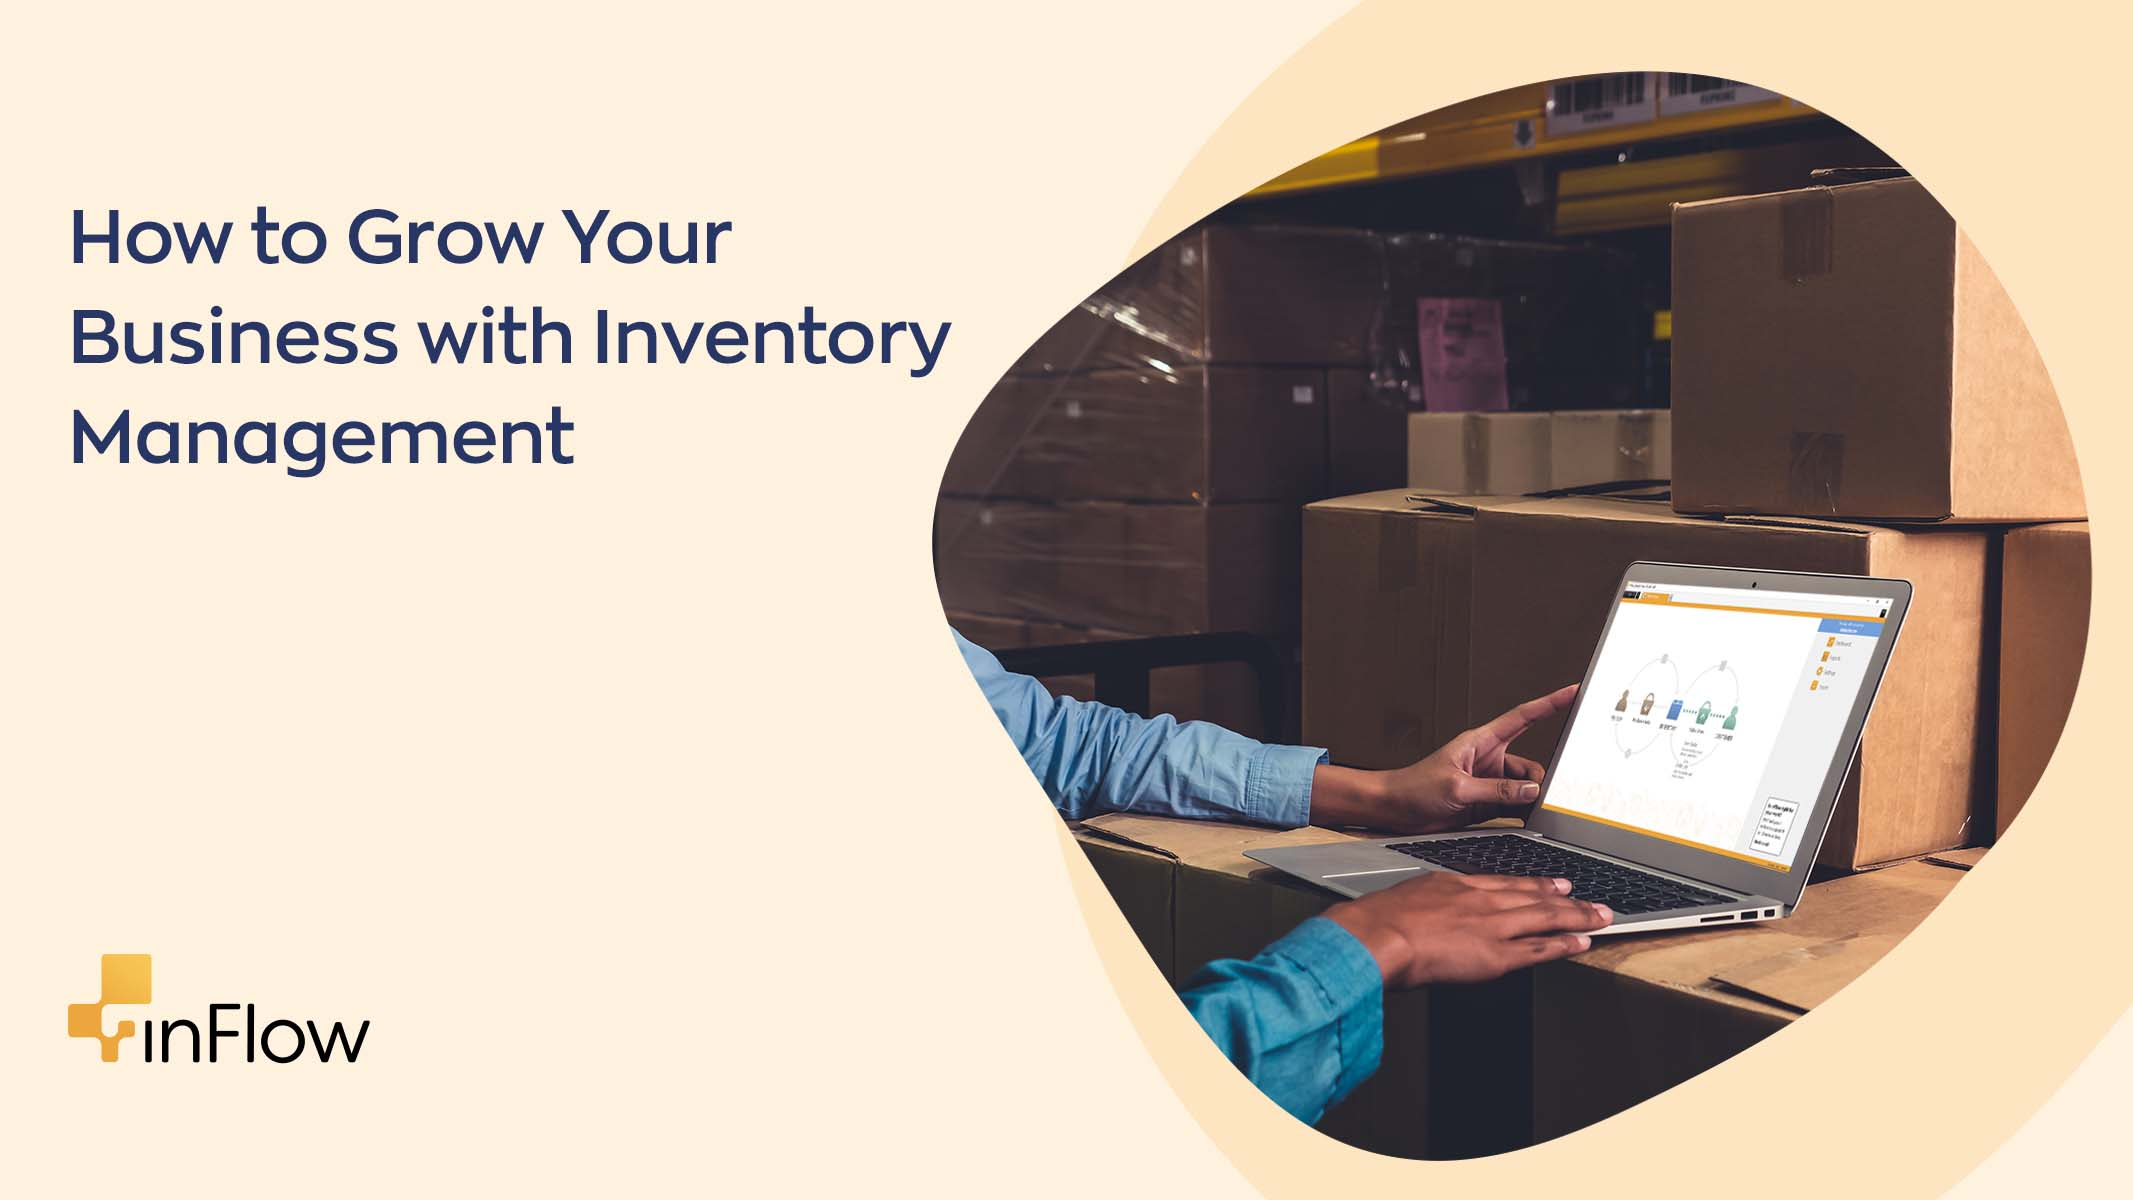 How to Grow Your Business with Inventory Management